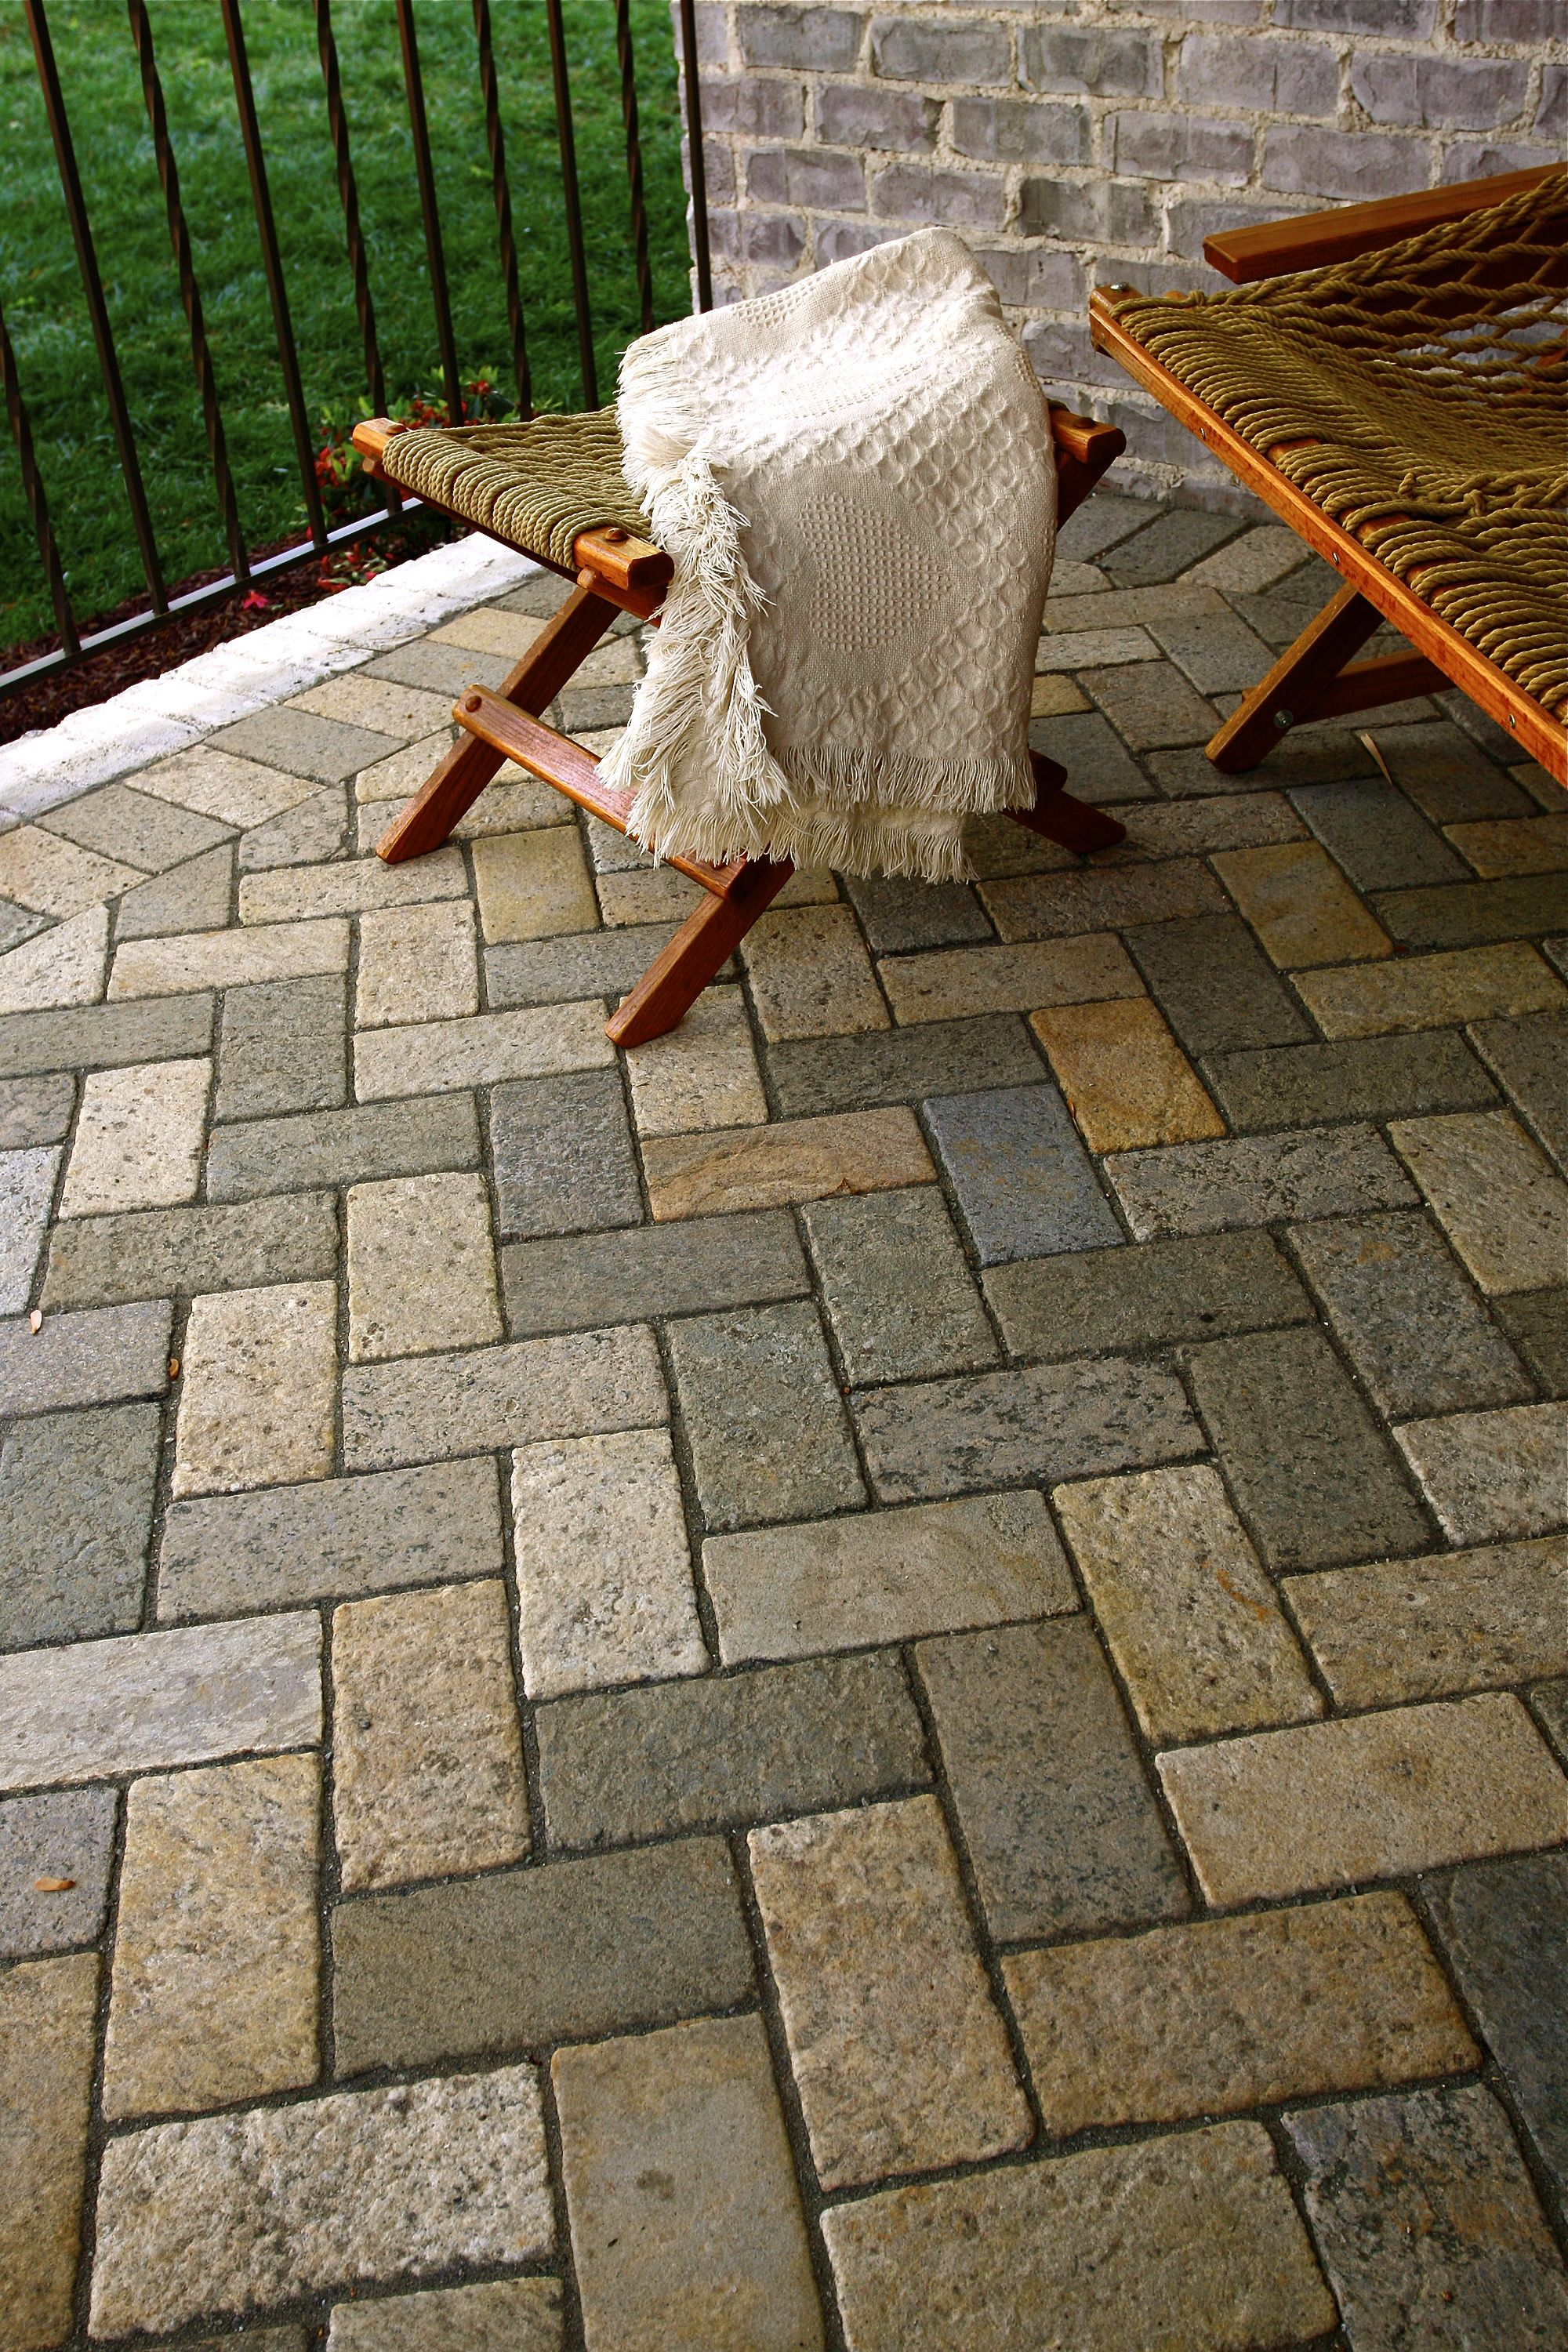 Brick Paver Patio With Fire Pit Cost: Brick Paver Patio Herringbone 4x8 Herringbone Patio